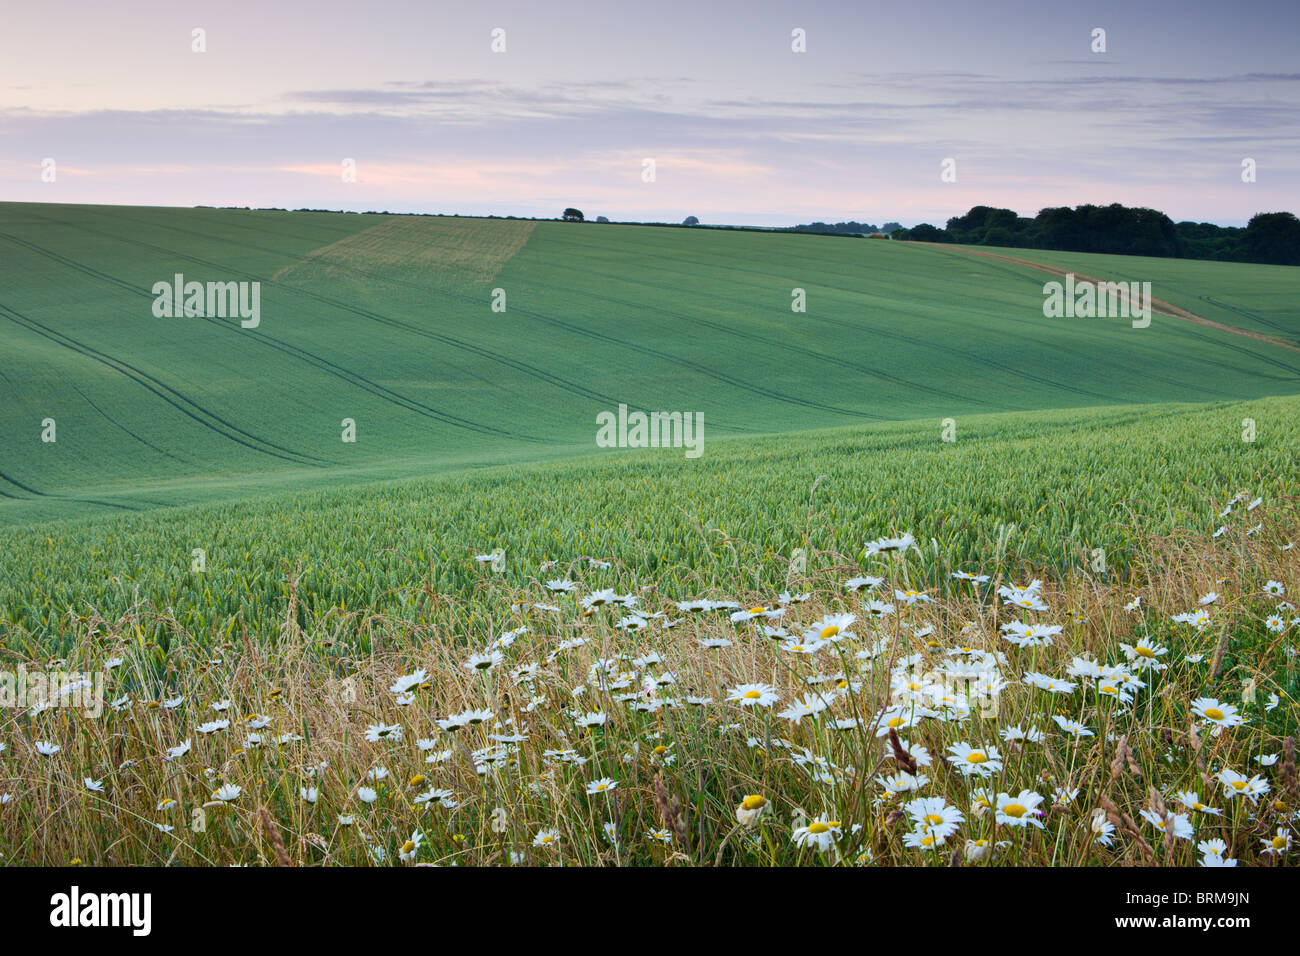 Daisies growing on the edge of a crop field in the South Downs National Park, Hampshire, England. Summer (July) - Stock Image